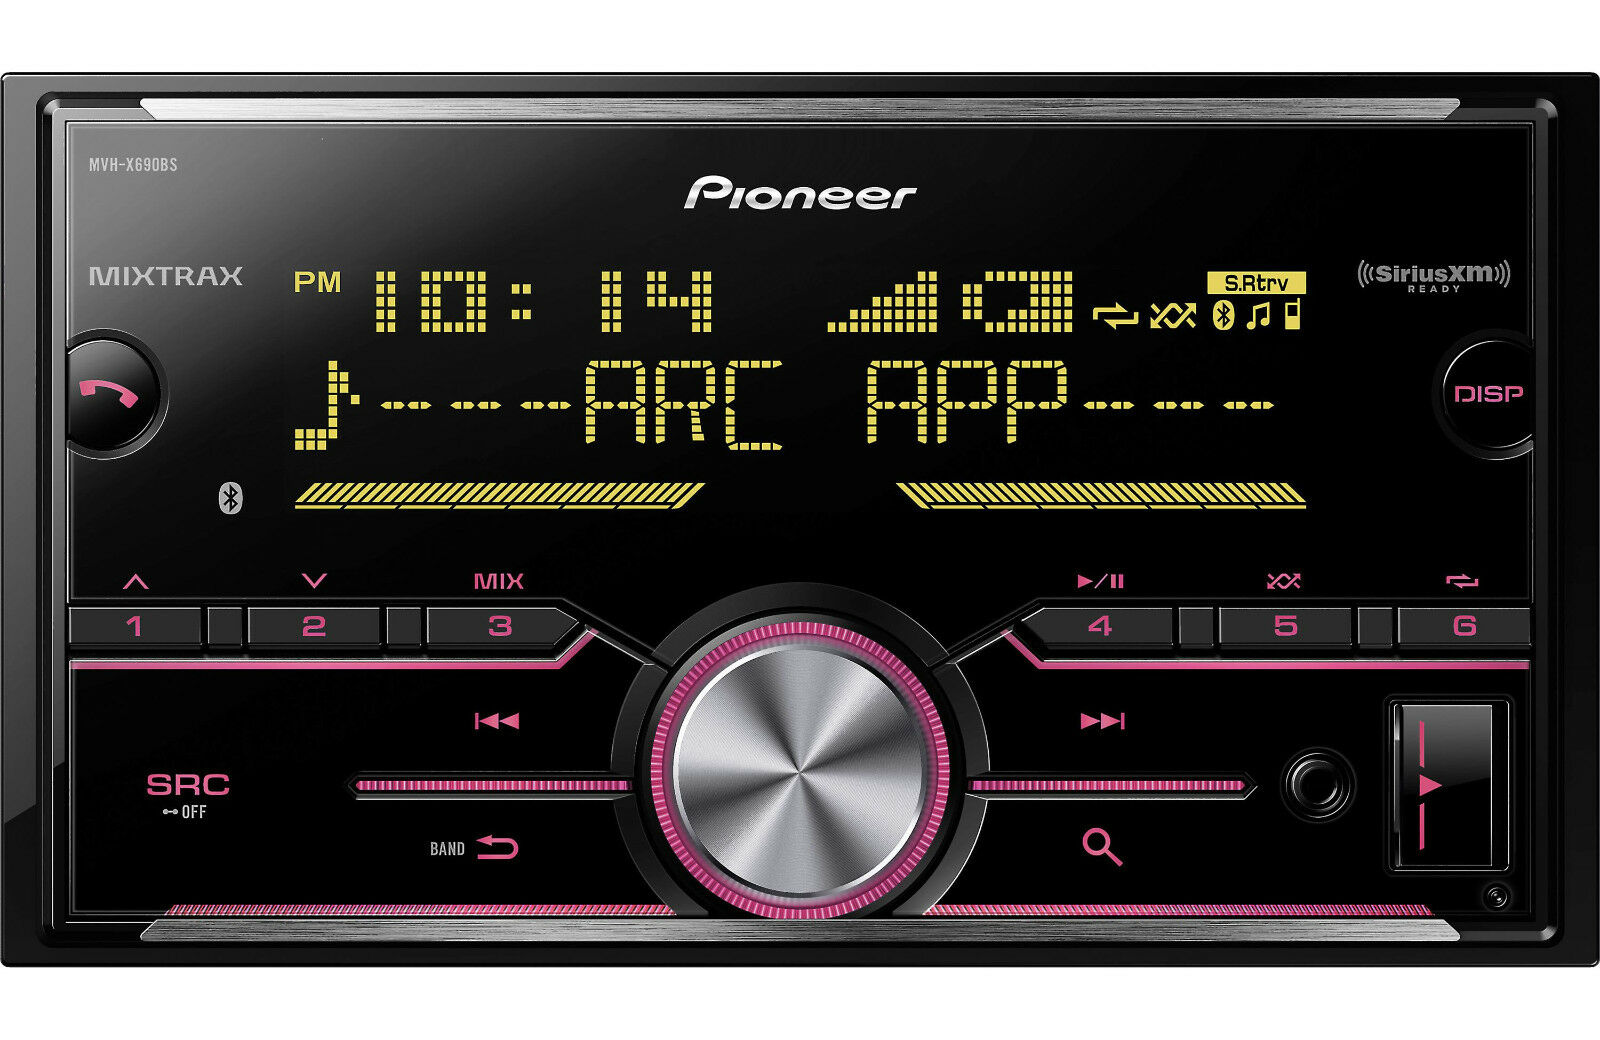 $91.90 - NEW Pioneer MVH-X690BS Double DIN MP3/WMA Digital Media Player Bluetooth MIXTRAX